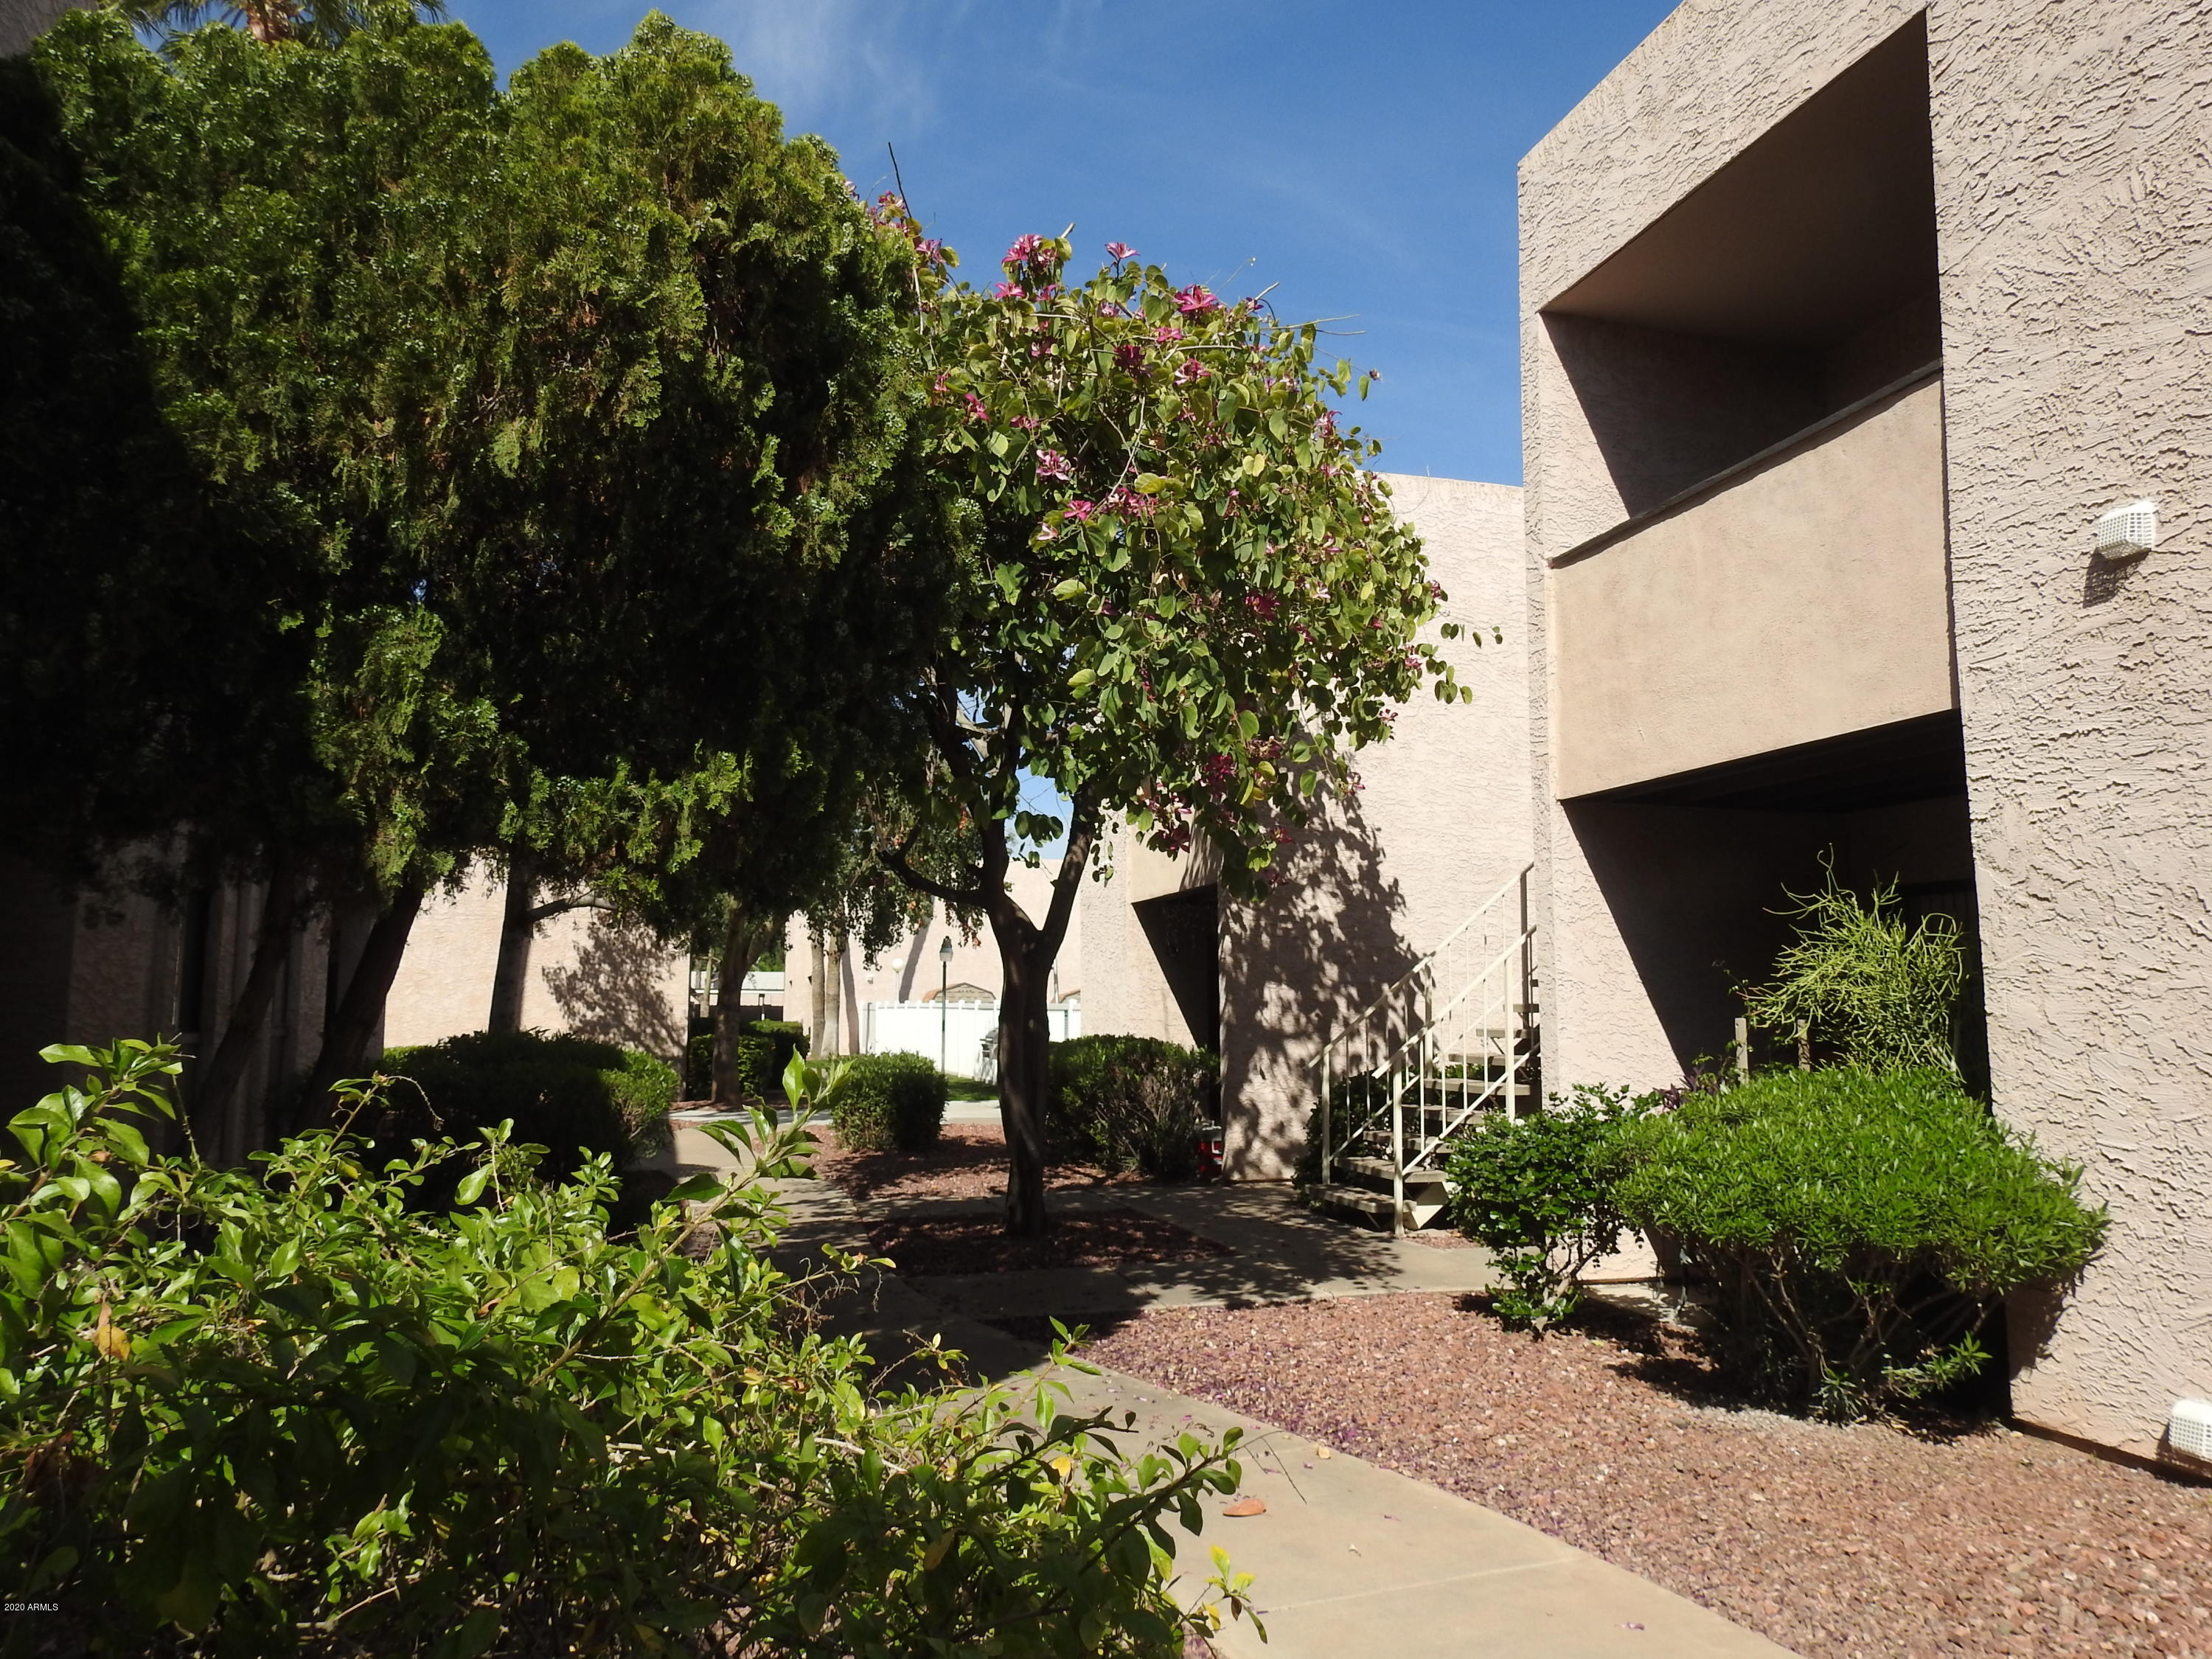 MLS 6158967 886 W GALVESTON Street Unit 228, Chandler, AZ 85225 Chandler AZ Single-Story